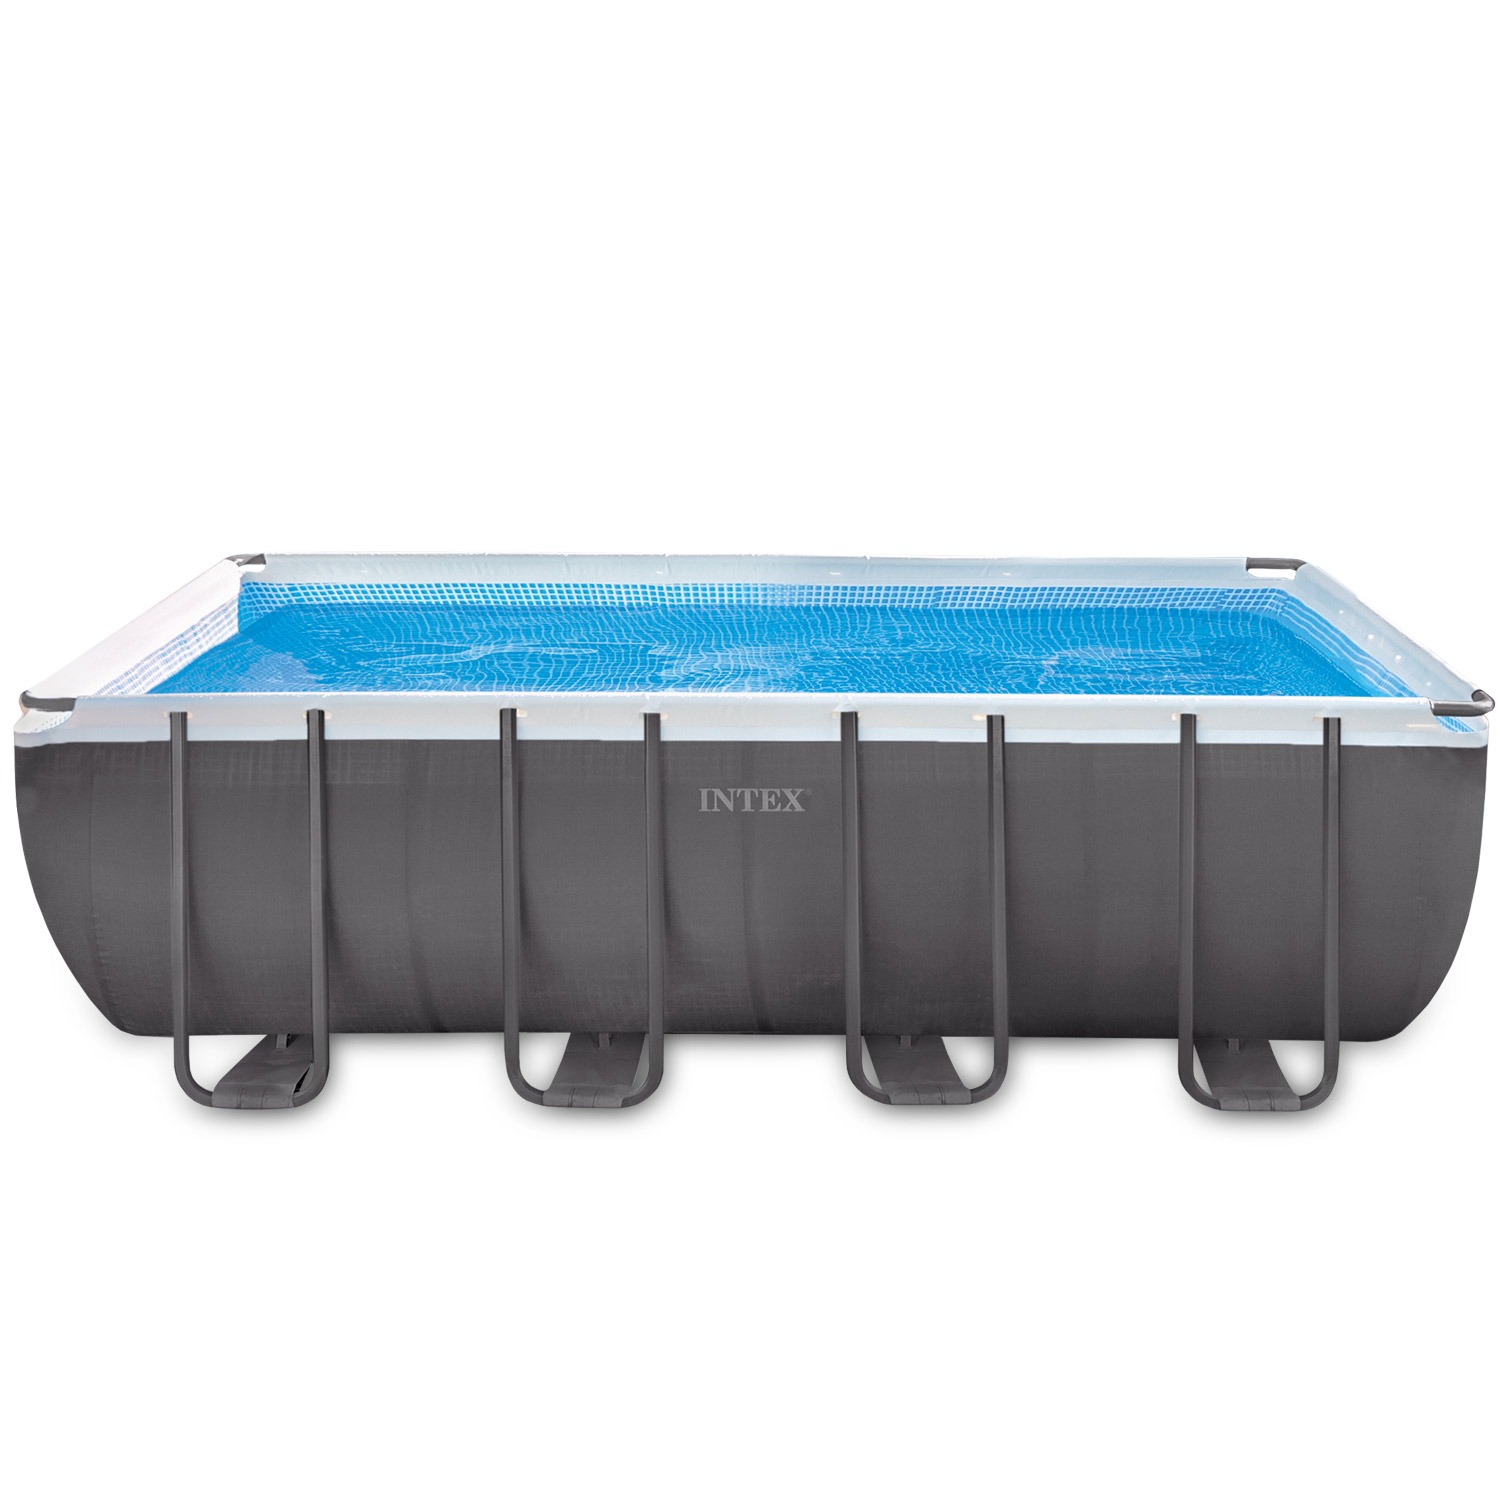 intex 549x274x132 swimming pool frame stahlwandbecken schwimmbecken schwimmbad ebay. Black Bedroom Furniture Sets. Home Design Ideas